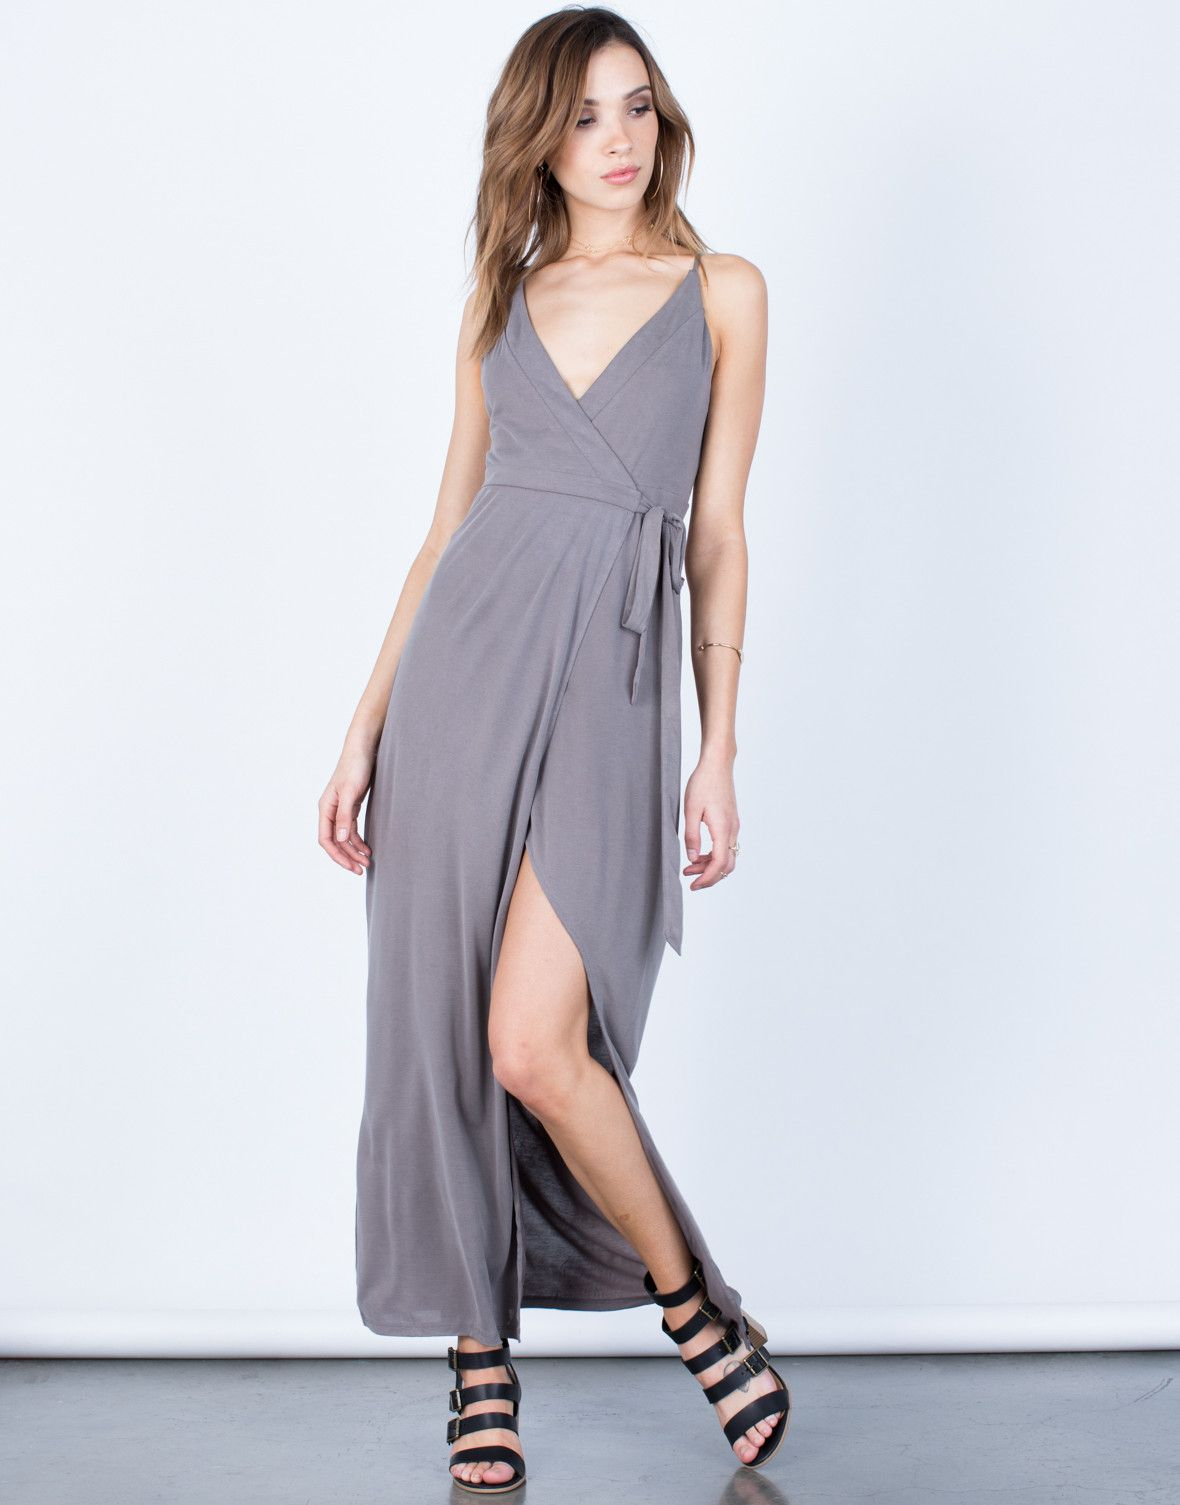 Front View of Wrap Maxi Dress #2020AVExLET'SGETAWAY I love simple, comfortable dresses for hot summer days!